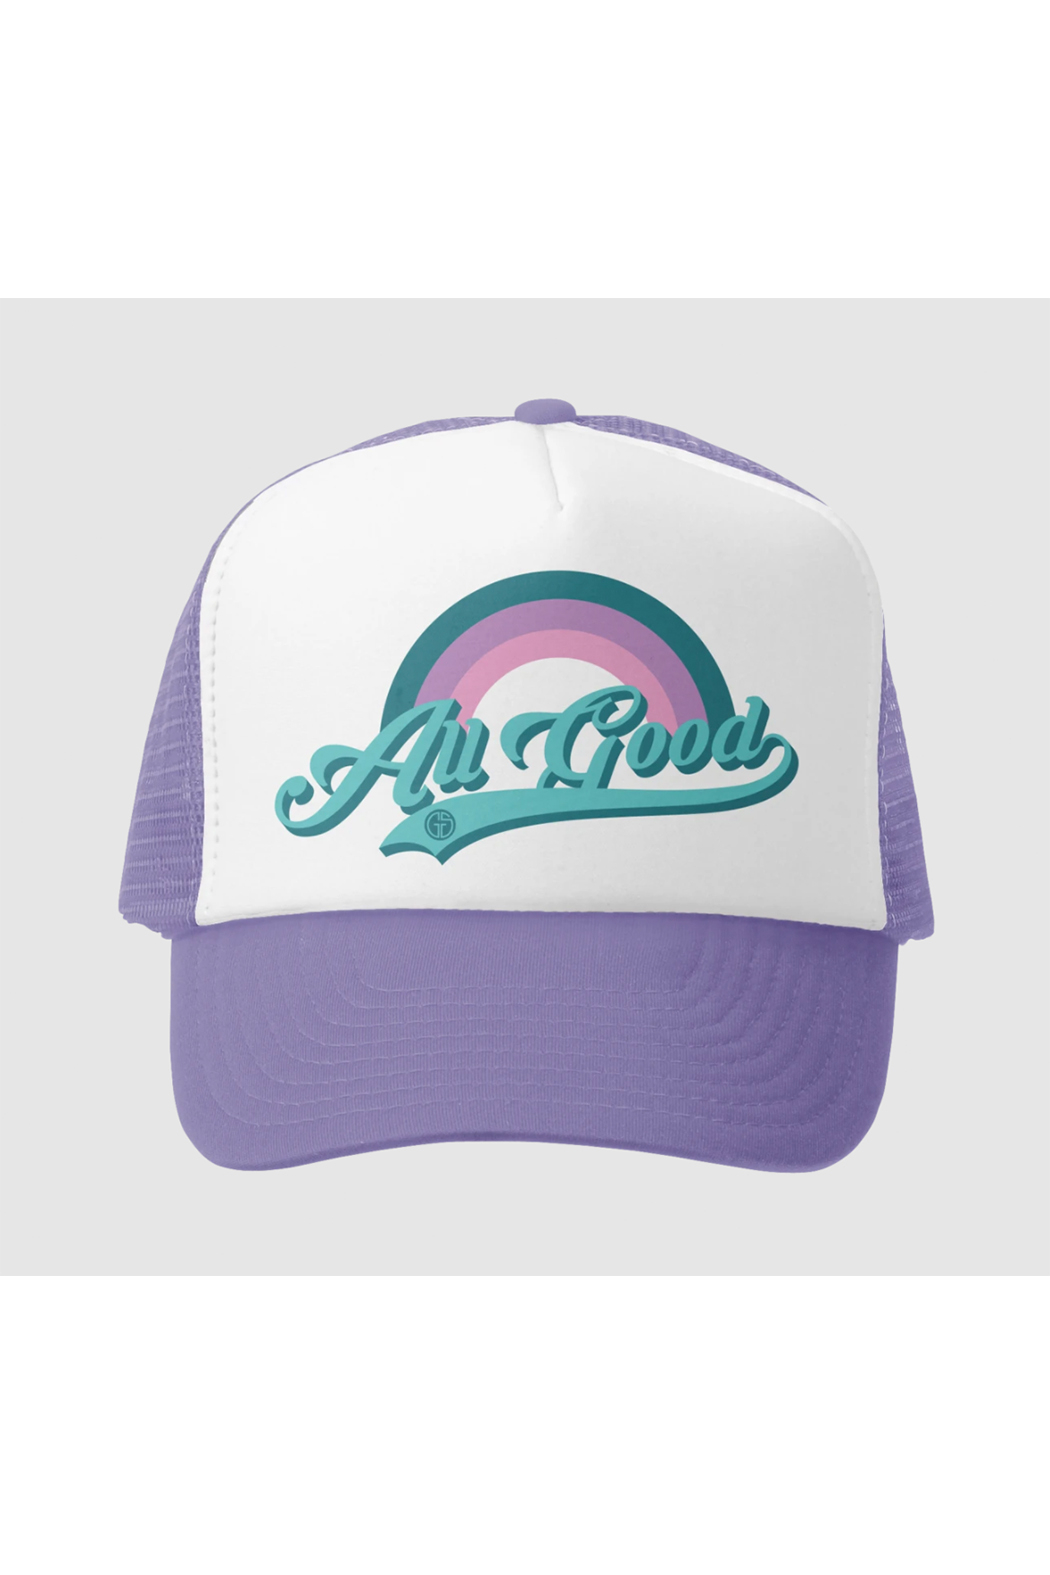 Grom Squad All Good Trucker Hat - Main Image